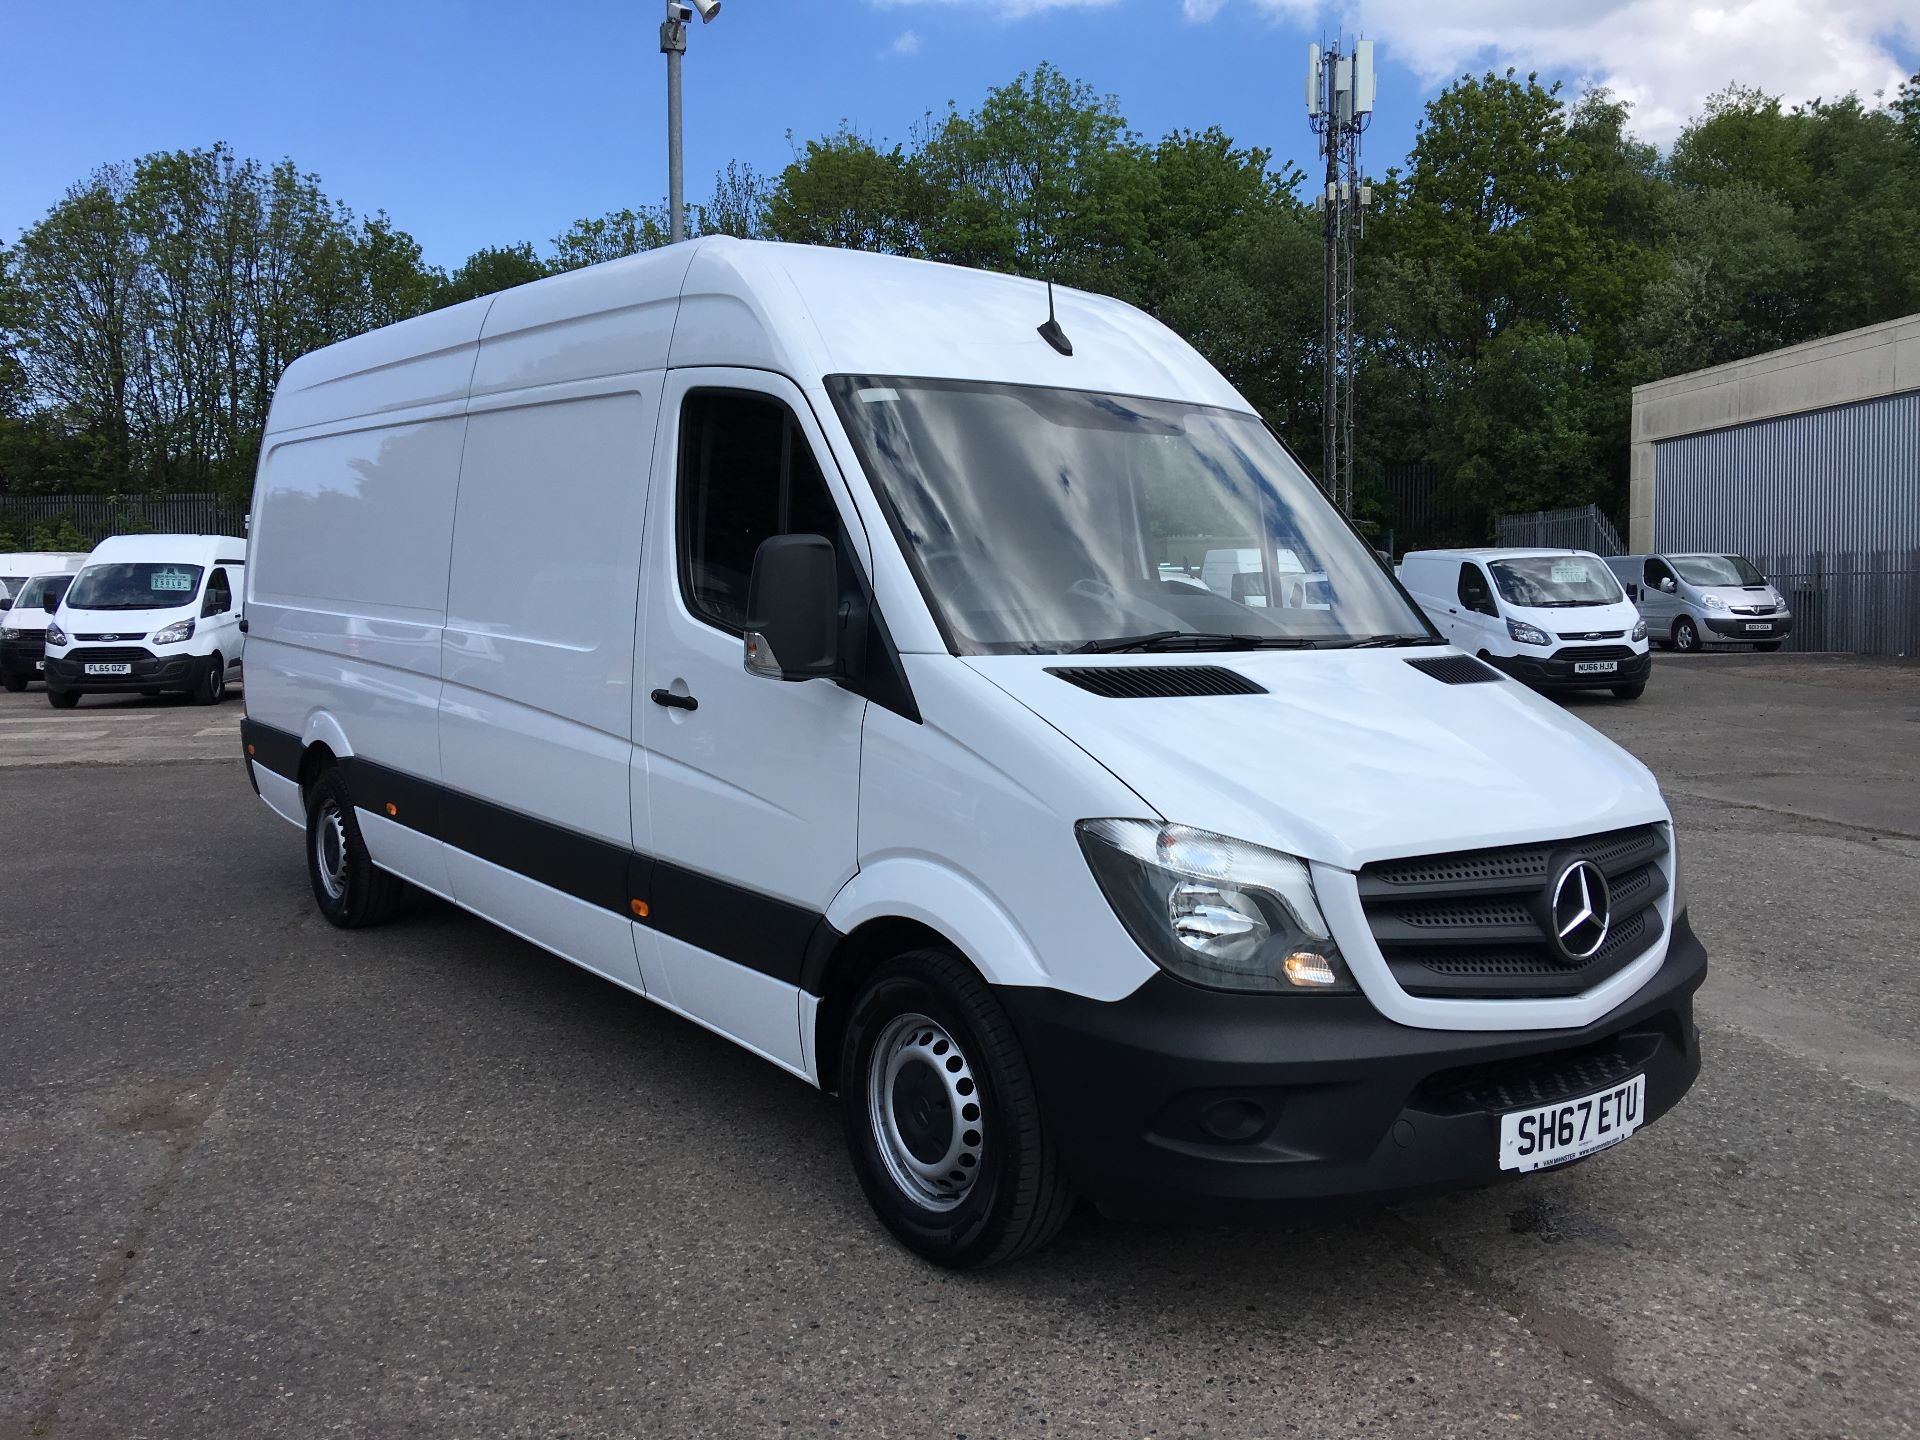 2017 Mercedes-Benz Sprinter 314 CDI LWB HIGH ROOF VAN EURO 6 (SH67ETU)